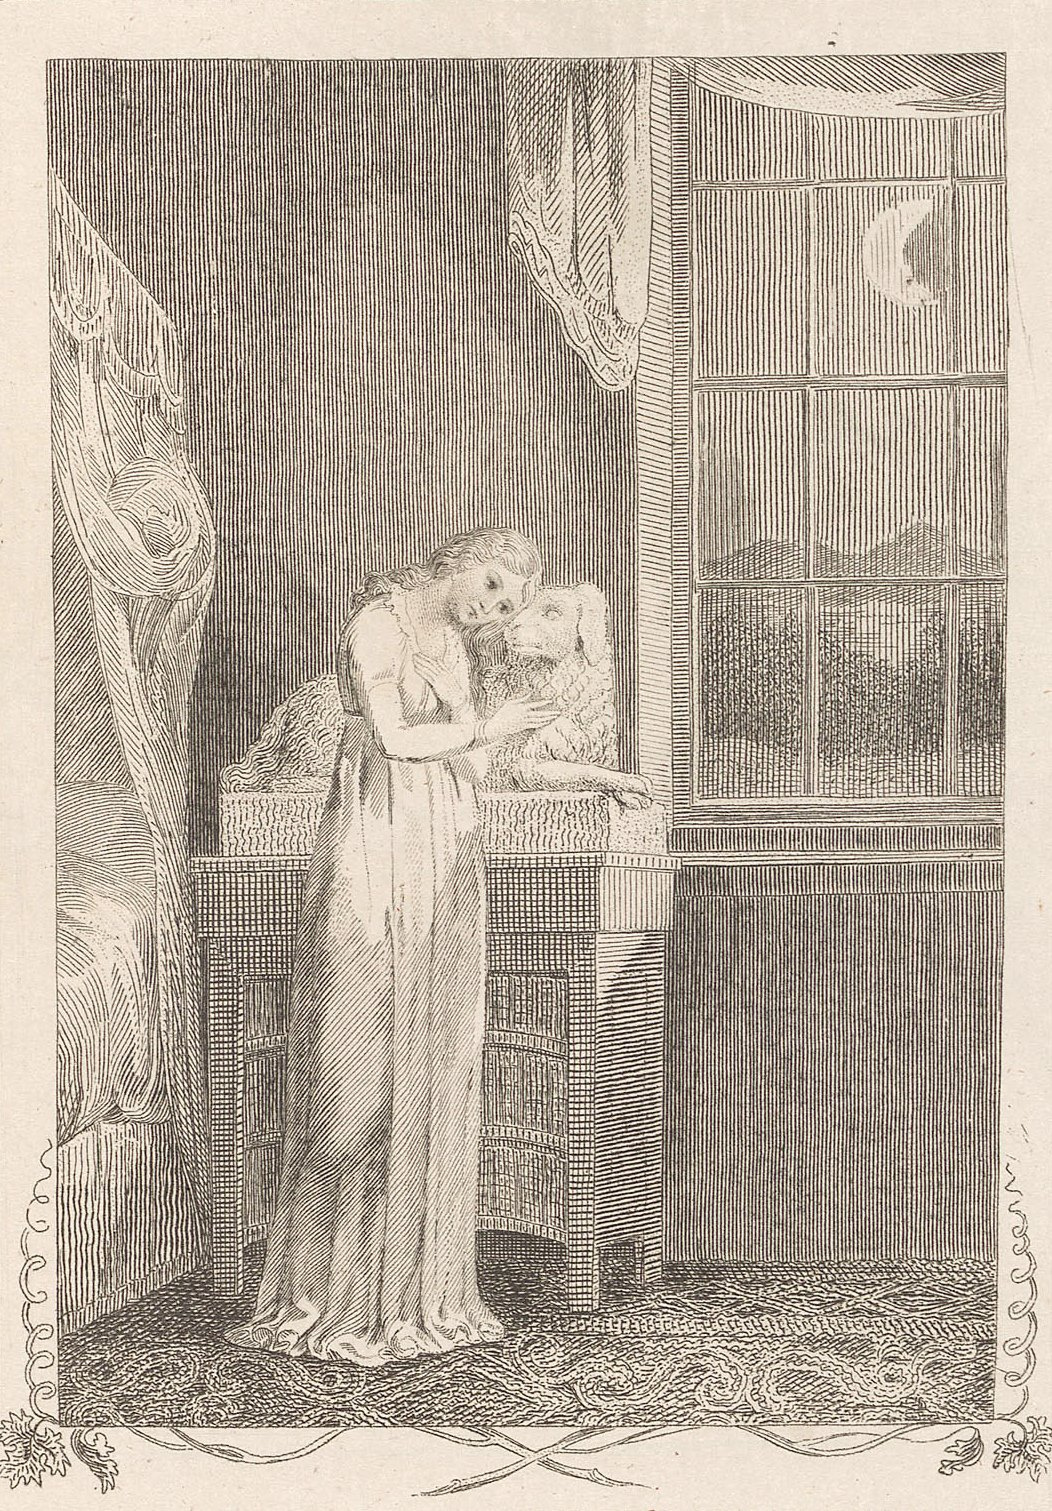 William Blake. The girl with the dog. Illustrations for the collection of ballads, by William Hayley